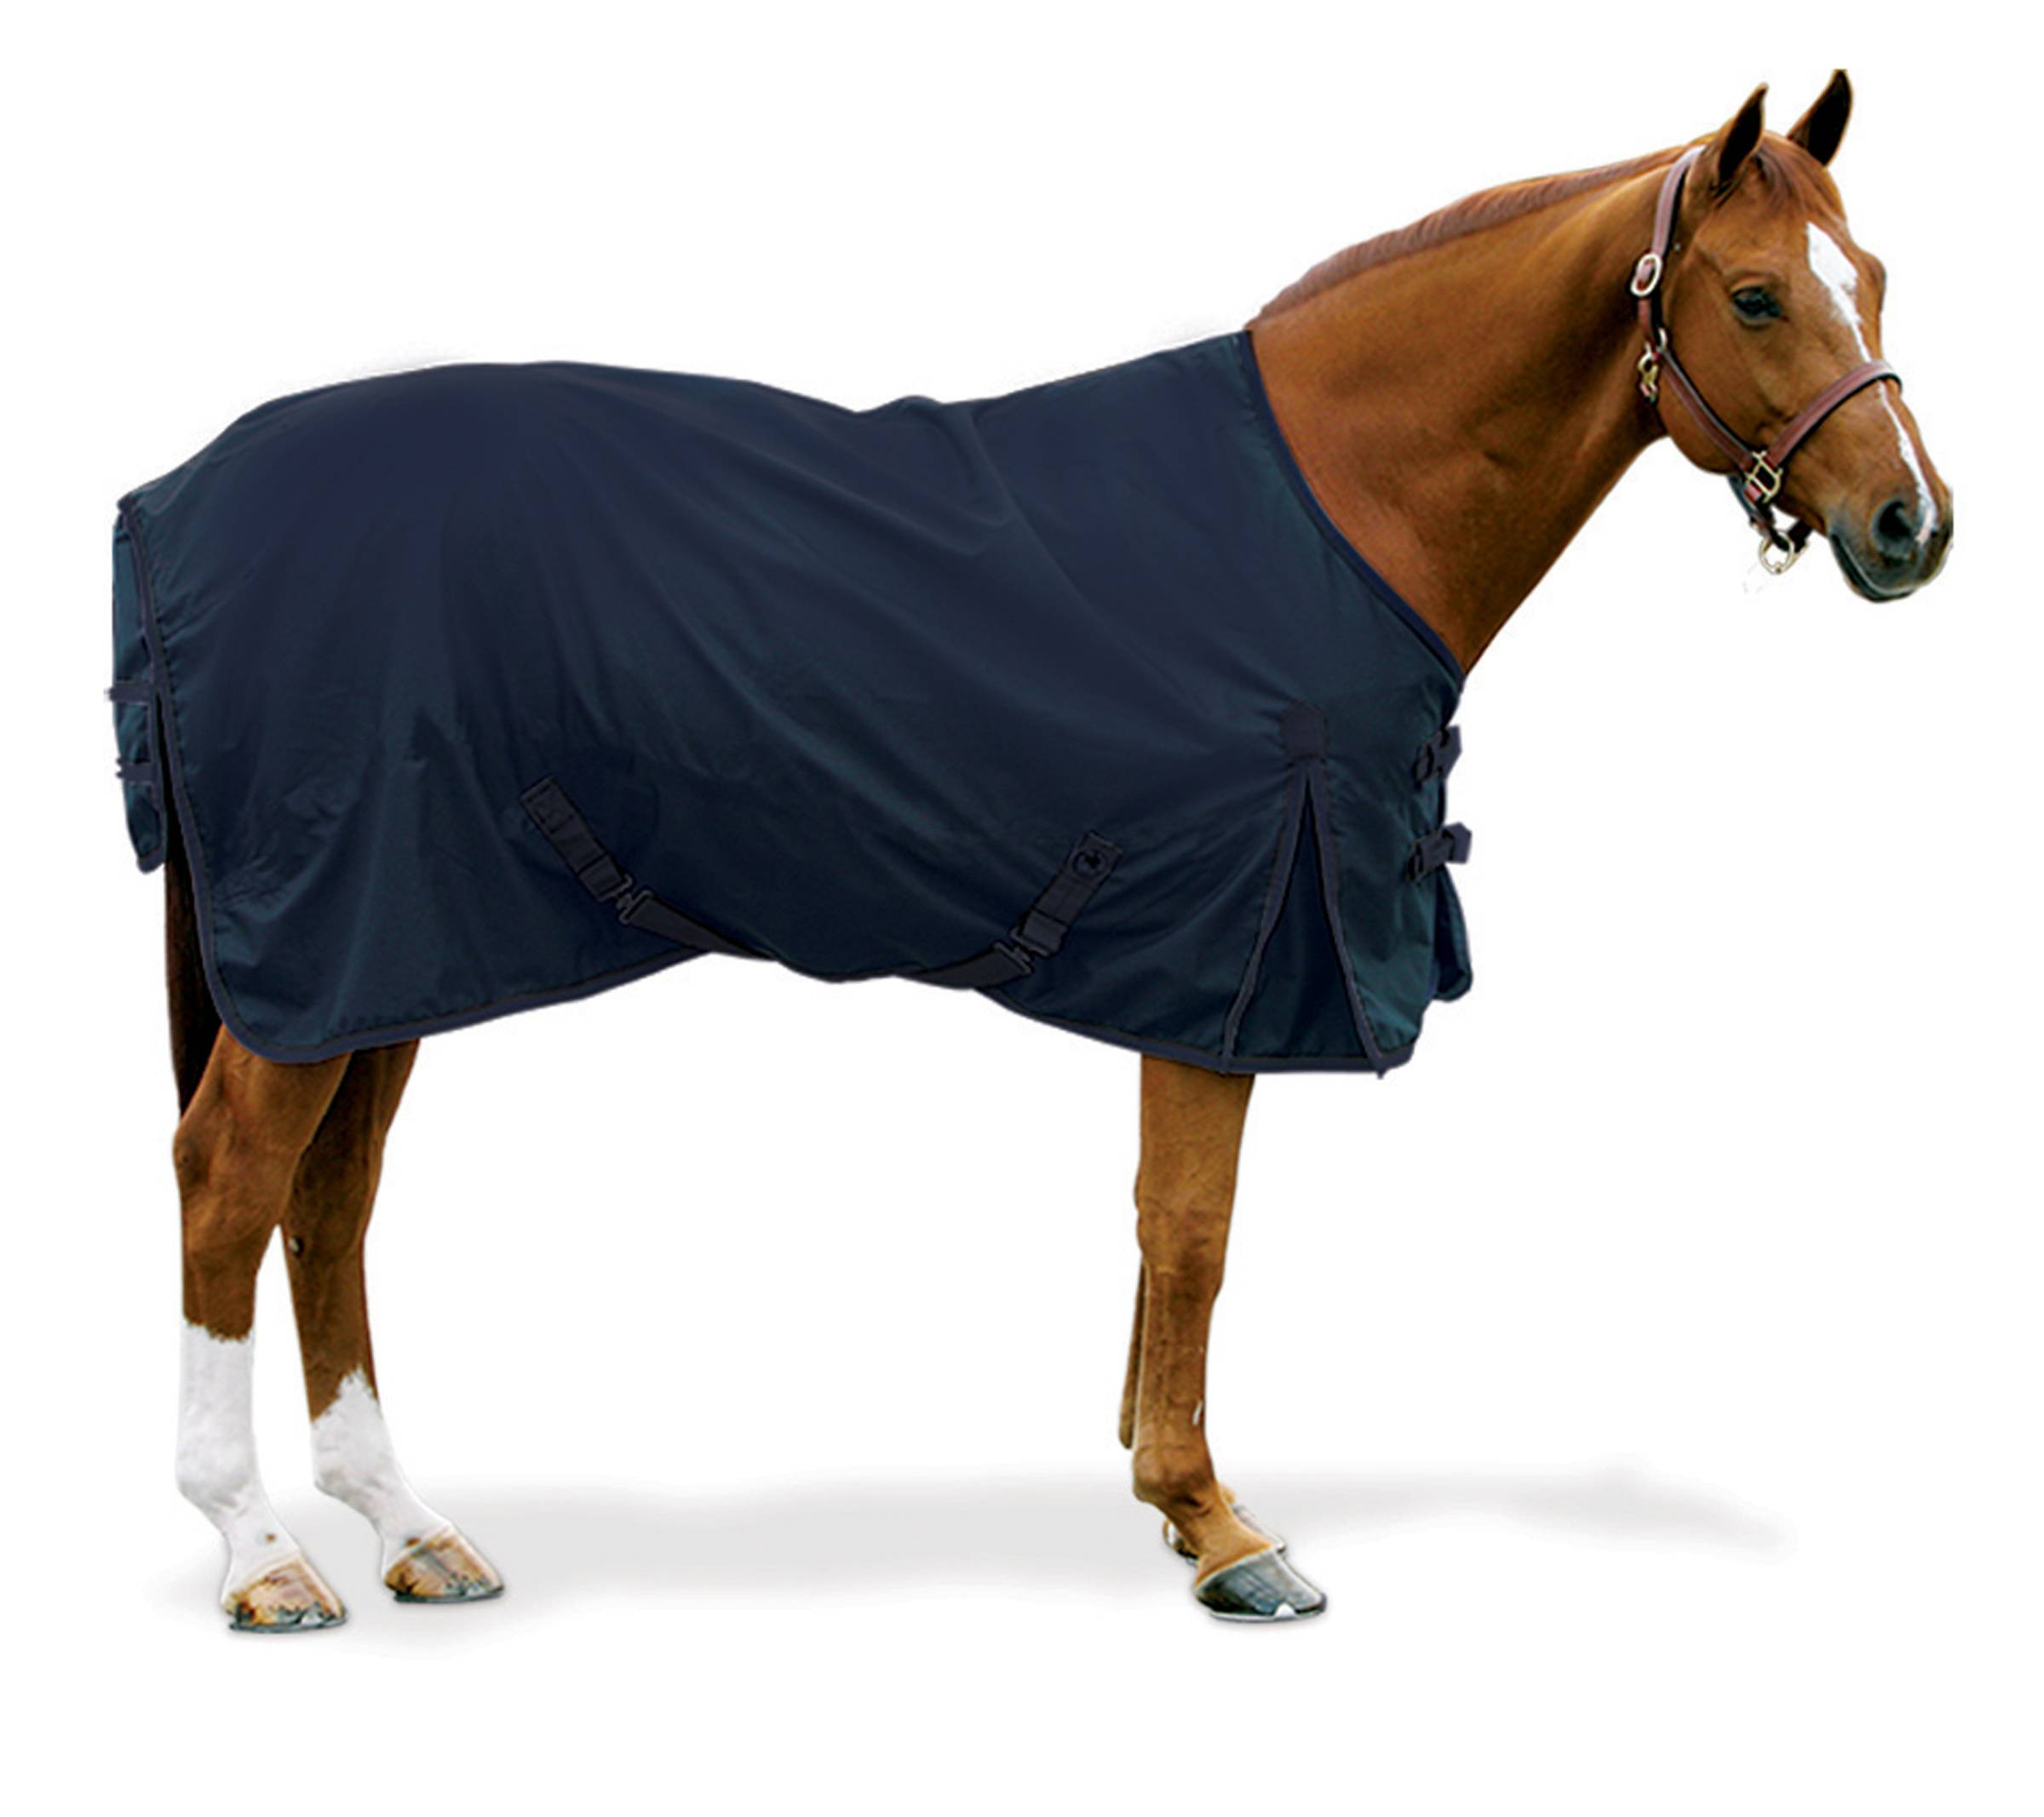 Equi-Essentials 600D Turnout Blanket - Medium (150g)